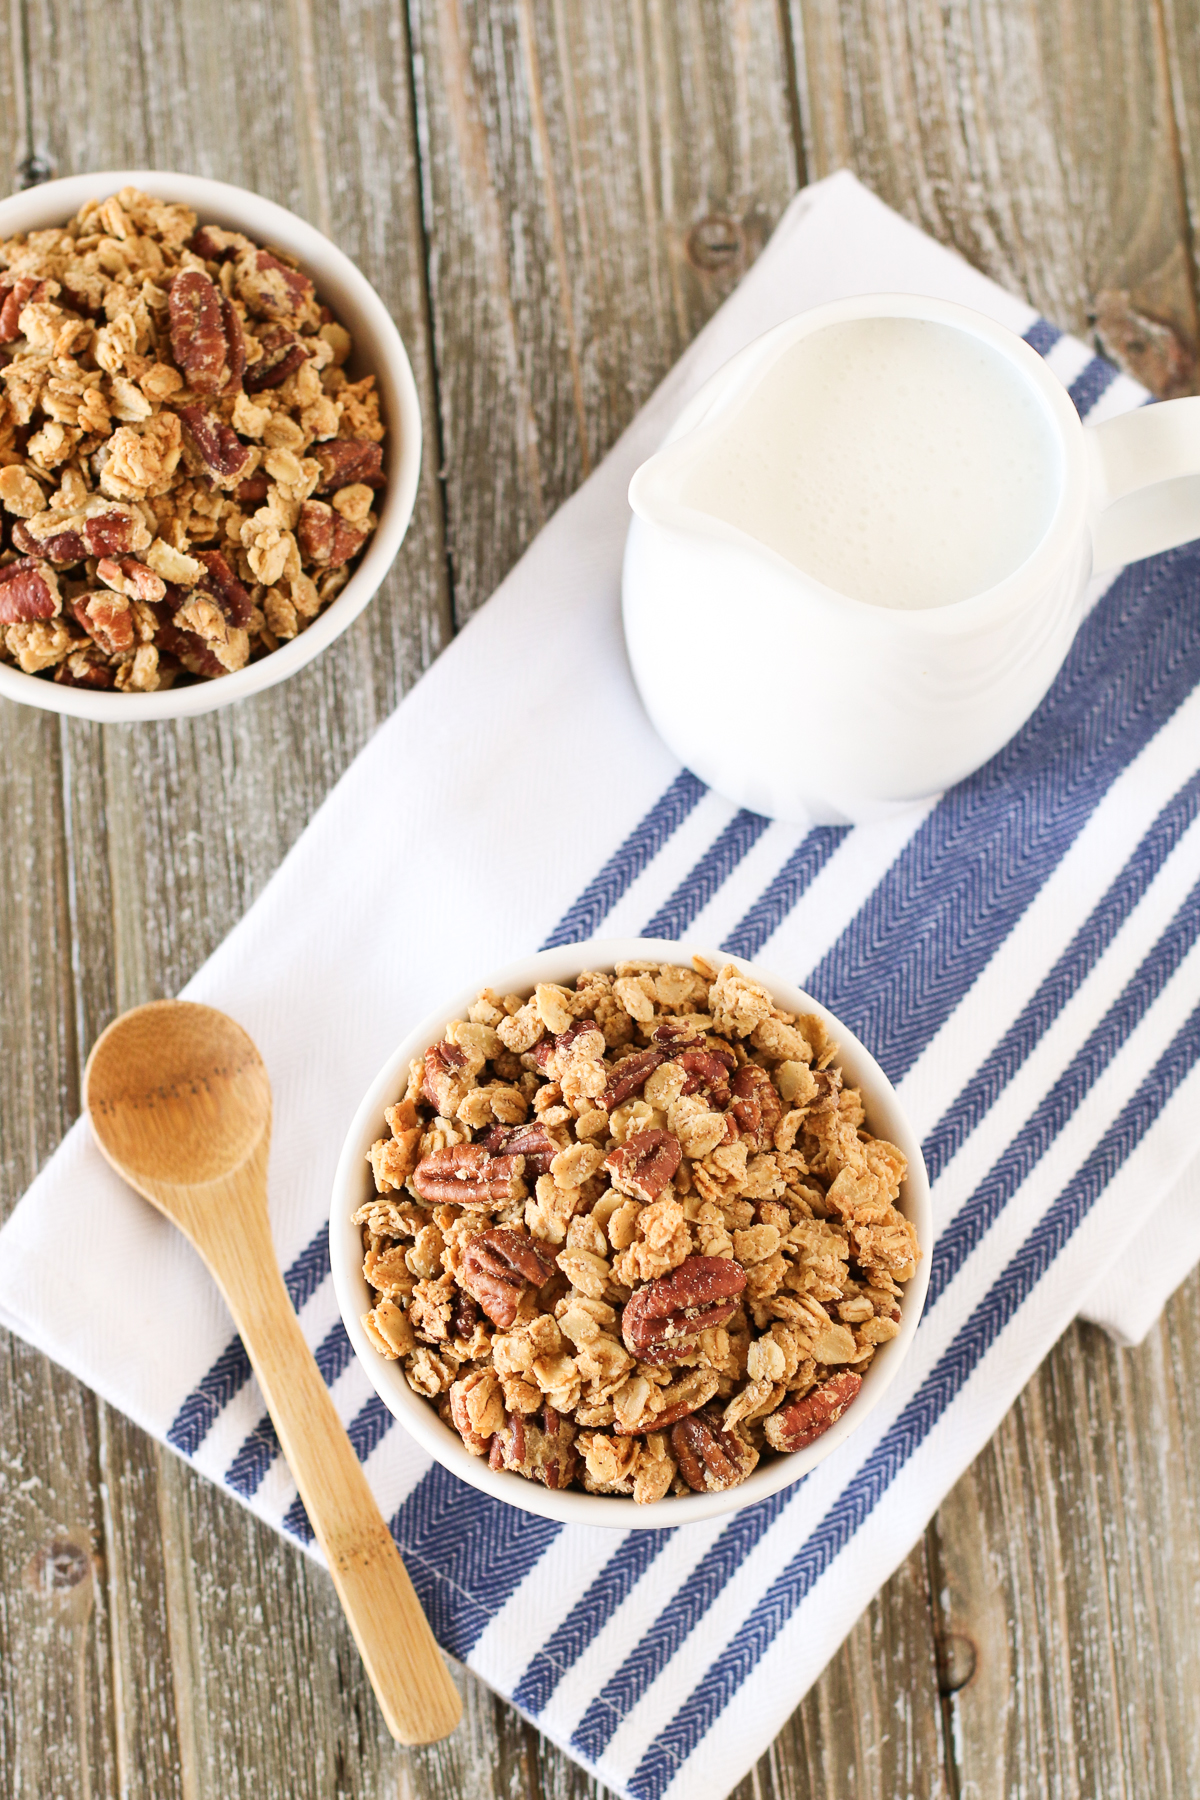 Gluten Free Vegan Pumpkin Spice Granola. Homemade granola made with oats, loads of pecans and all the fall spices.